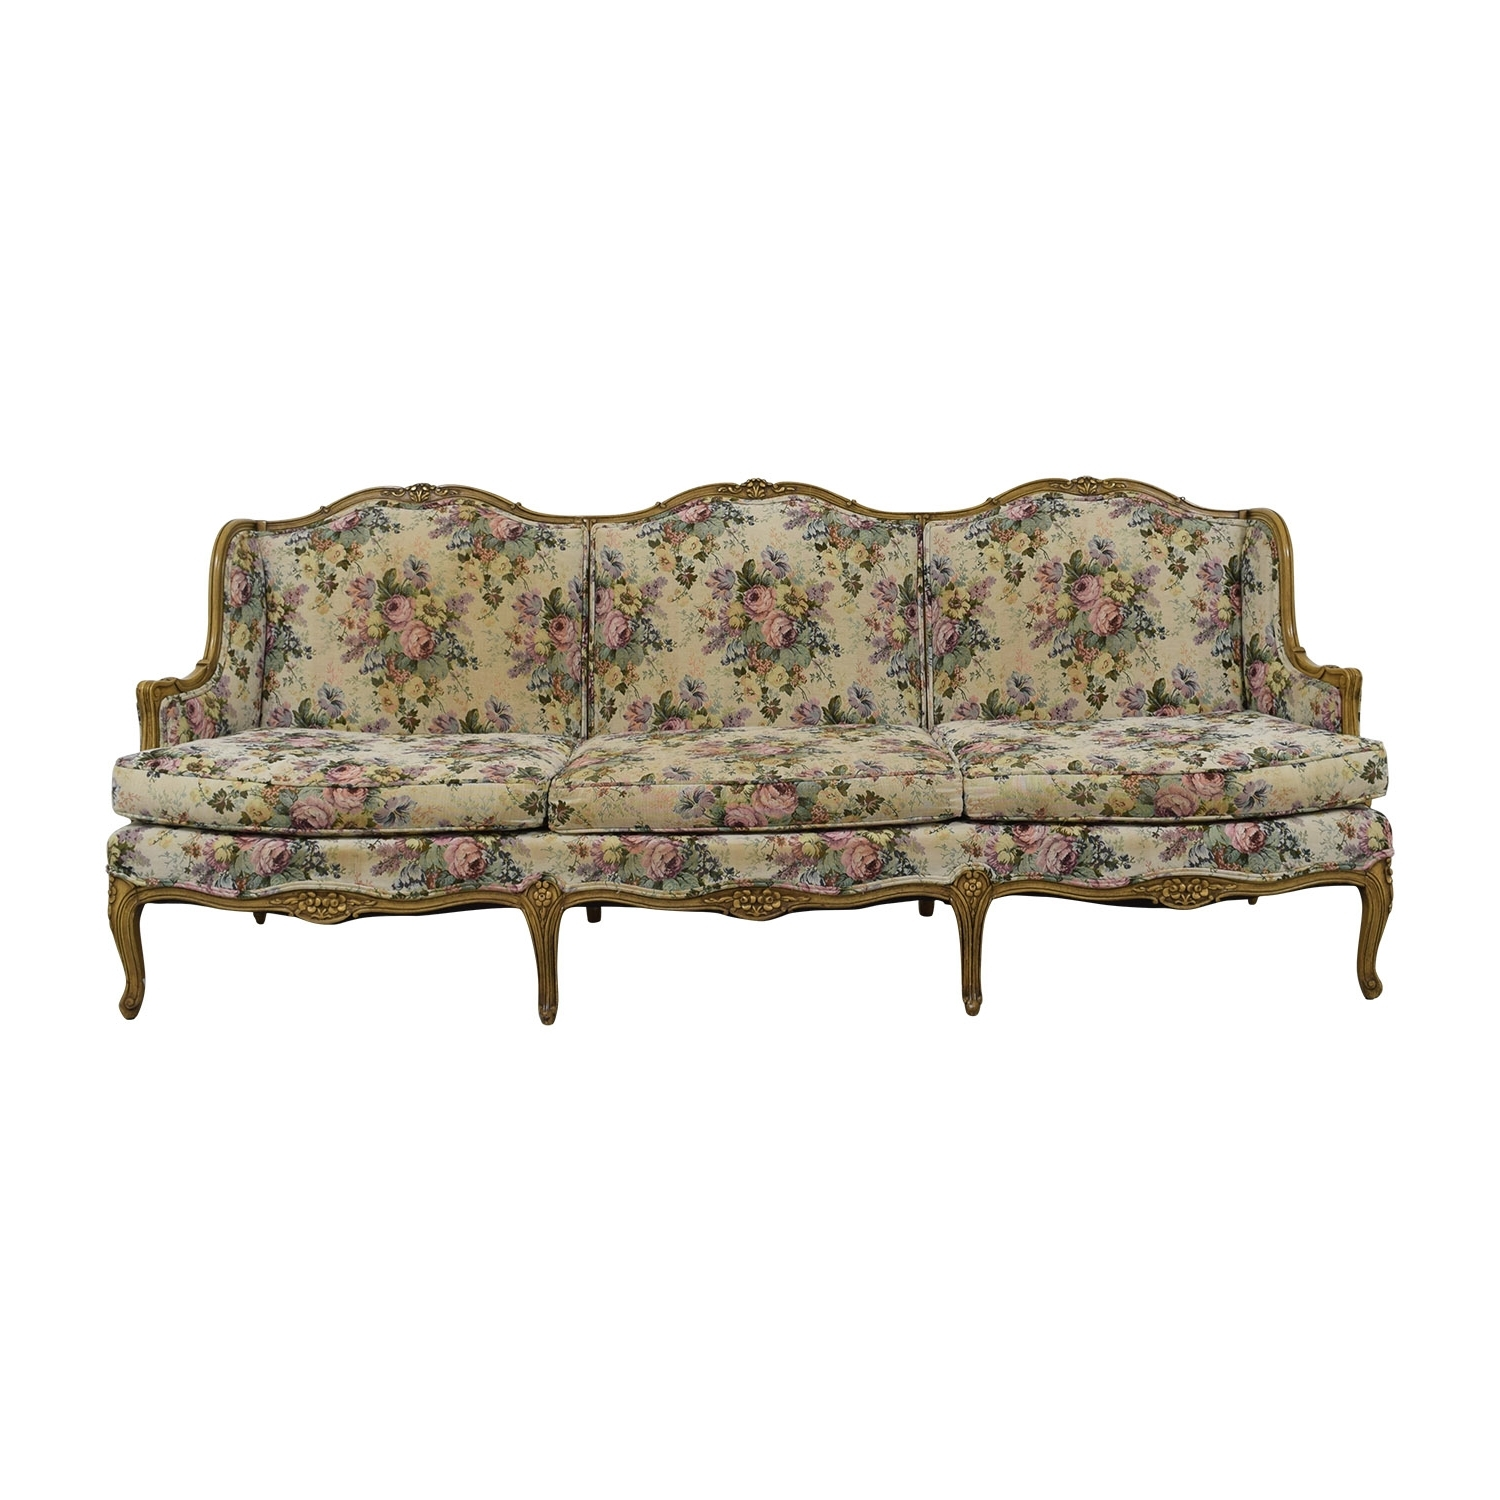 [%86% Off – Vintage Floral Sofa / Sofas Pertaining To Most Popular Vintage Sofas|Vintage Sofas Inside Most Up To Date 86% Off – Vintage Floral Sofa / Sofas|Trendy Vintage Sofas Pertaining To 86% Off – Vintage Floral Sofa / Sofas|Trendy 86% Off – Vintage Floral Sofa / Sofas For Vintage Sofas%] (View 8 of 20)